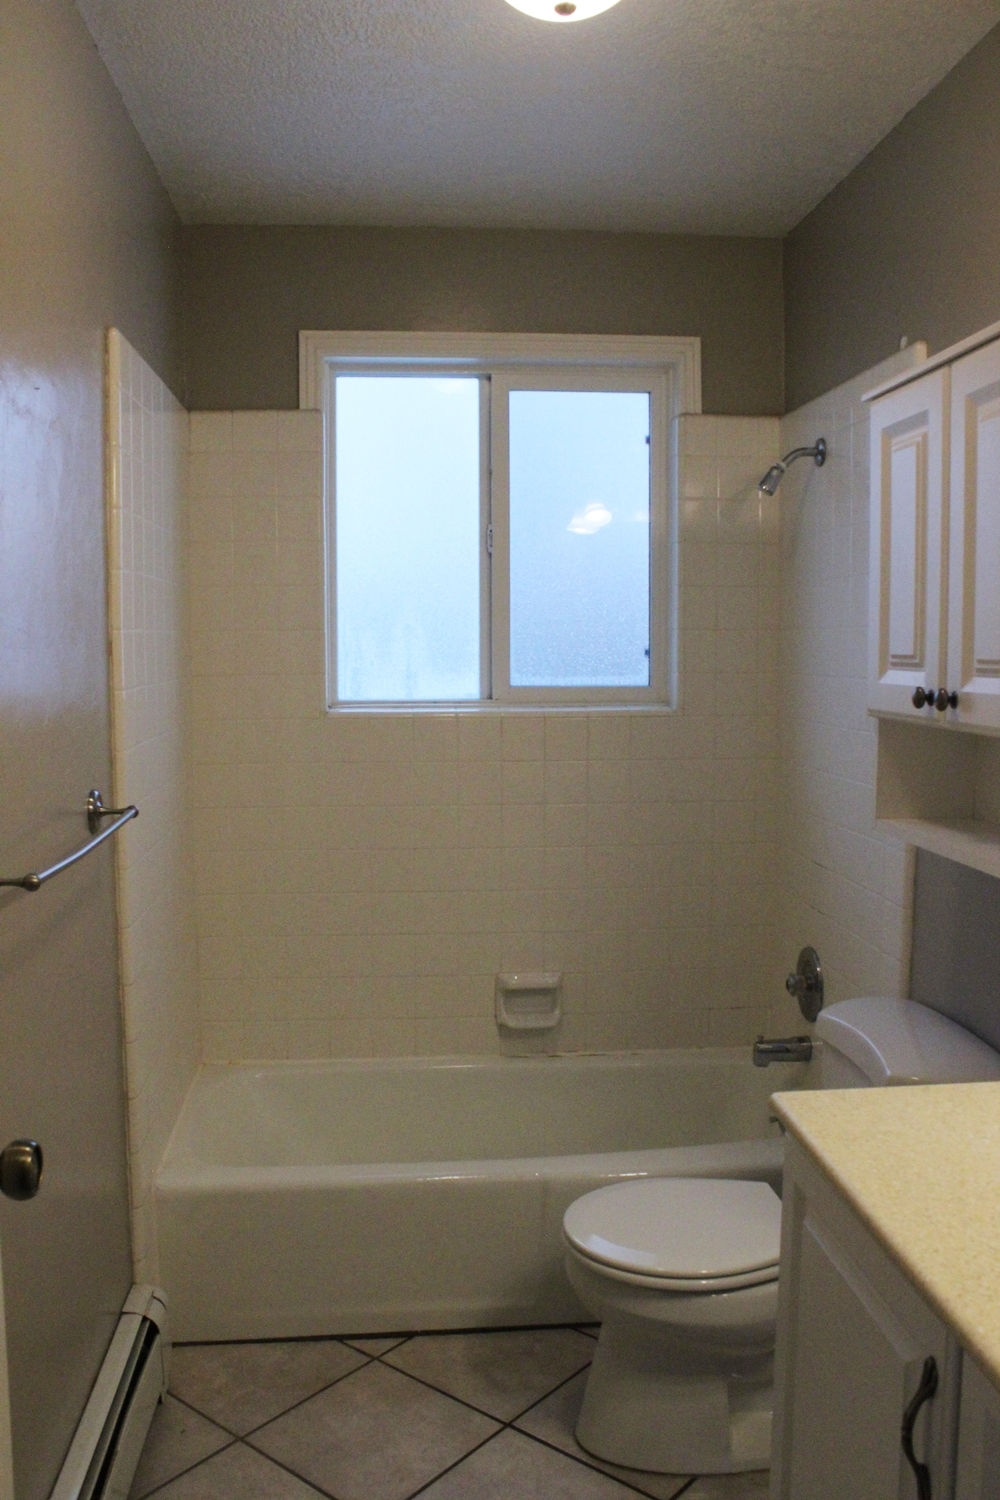 bathroom tile tub surround removal - Bathroom Tile Ideas For Tub Surround